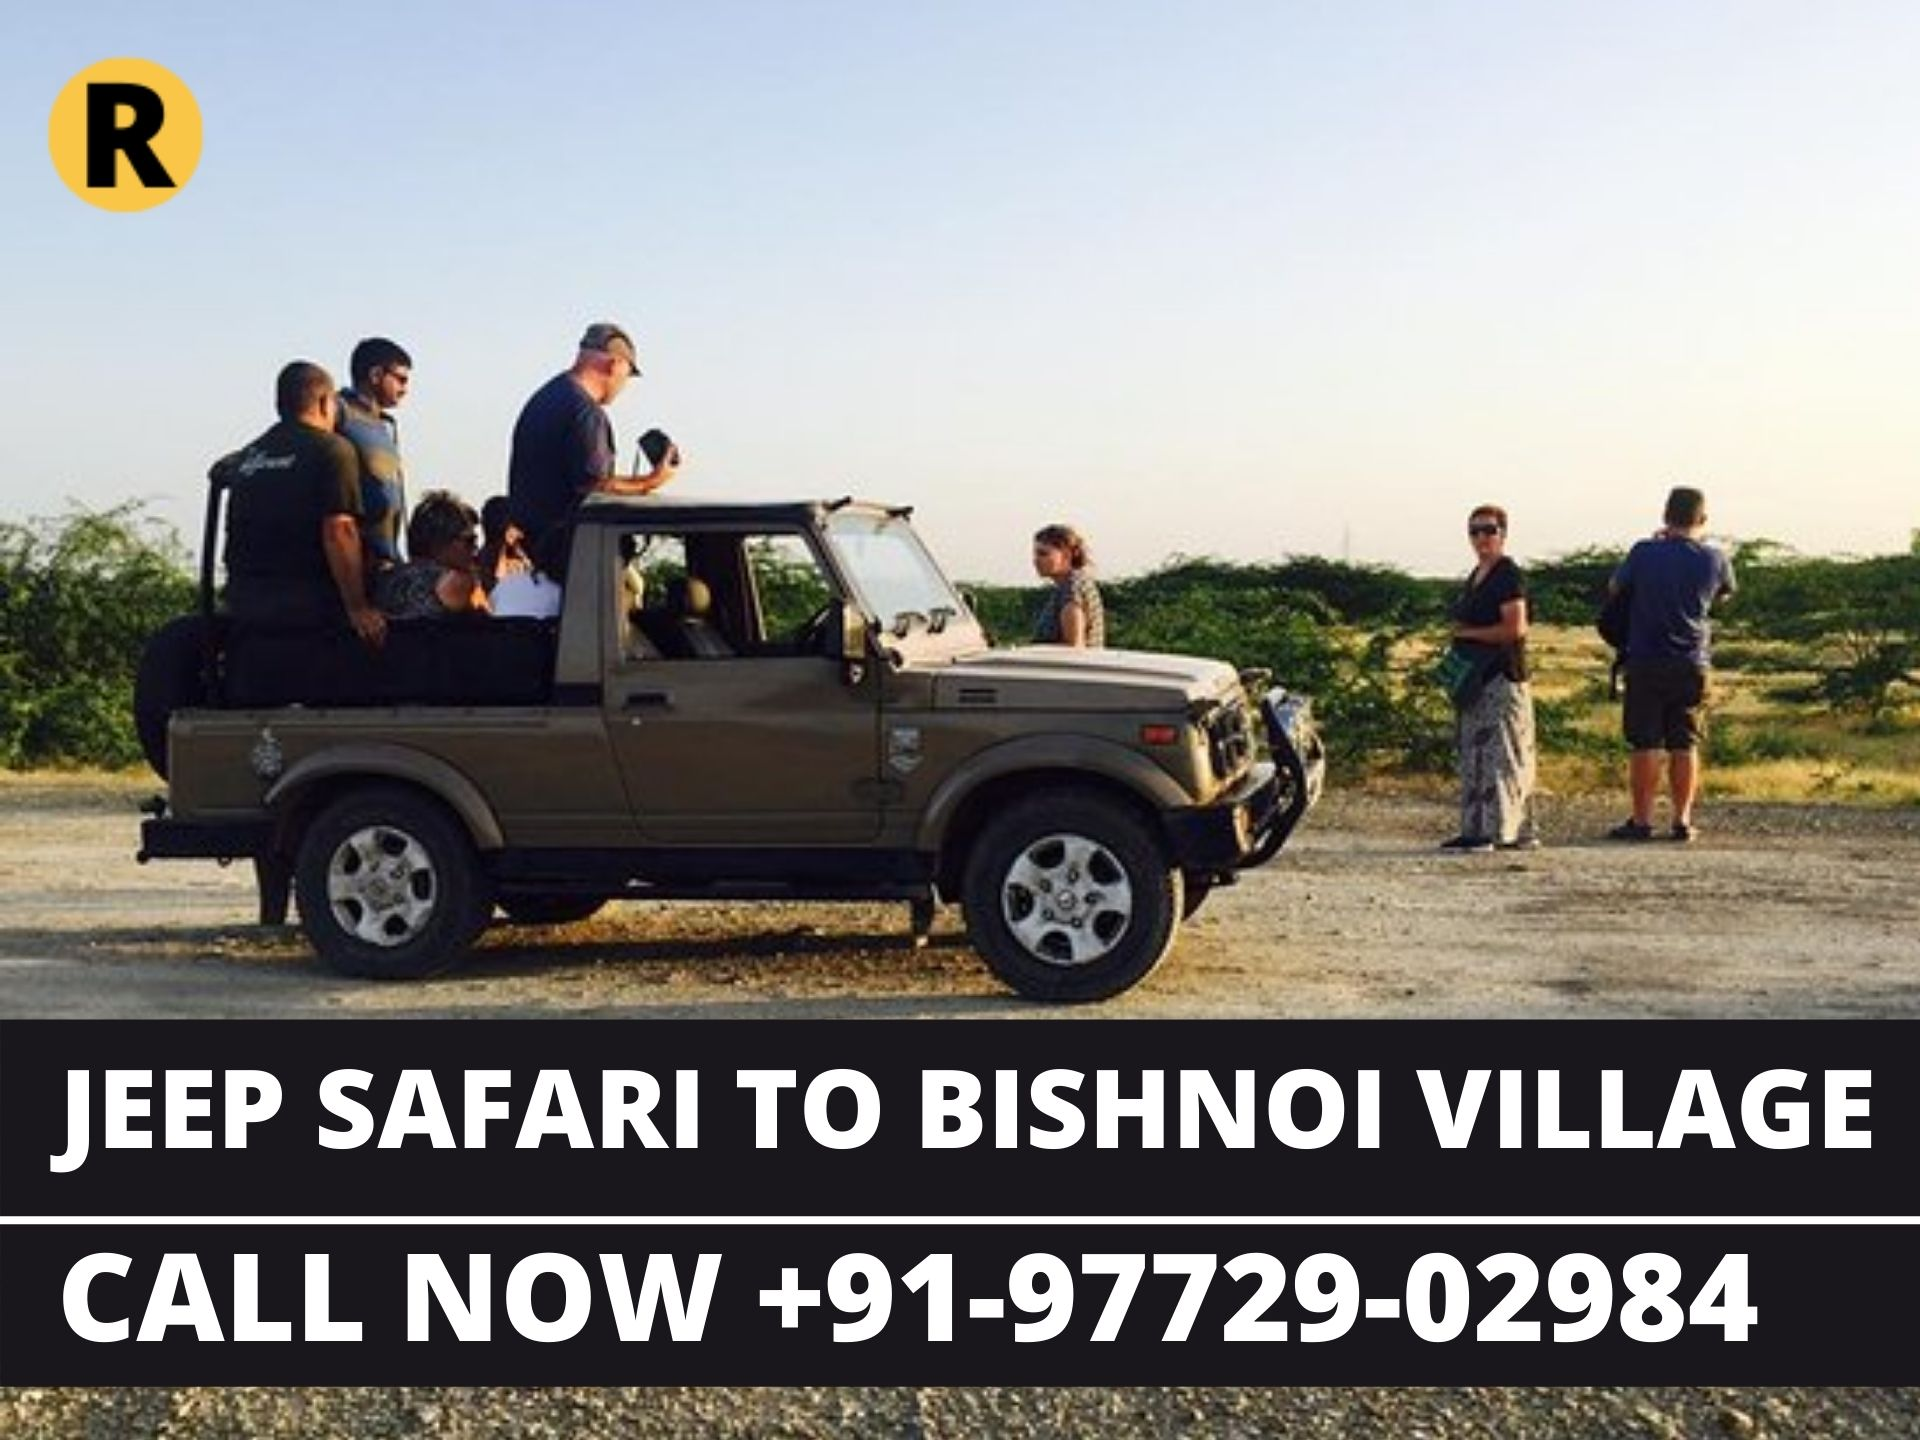 Jeep Safari to Bishnoi Village